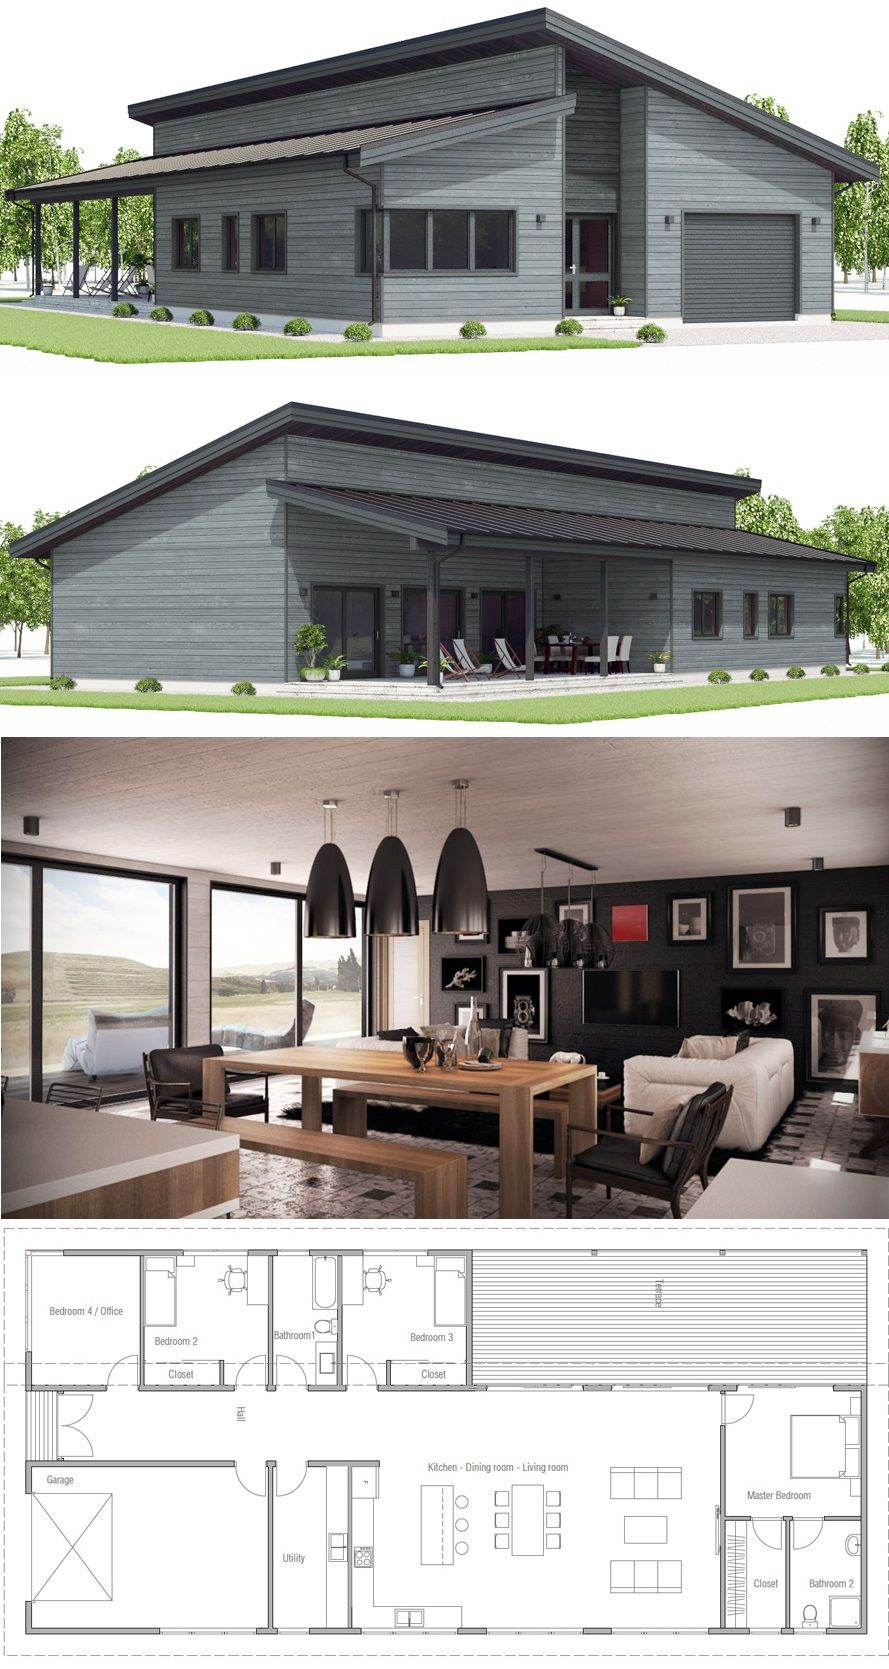 House Plans Metal Buildings Elegant House Plan Home Plans Modern House with Three Bedrooms